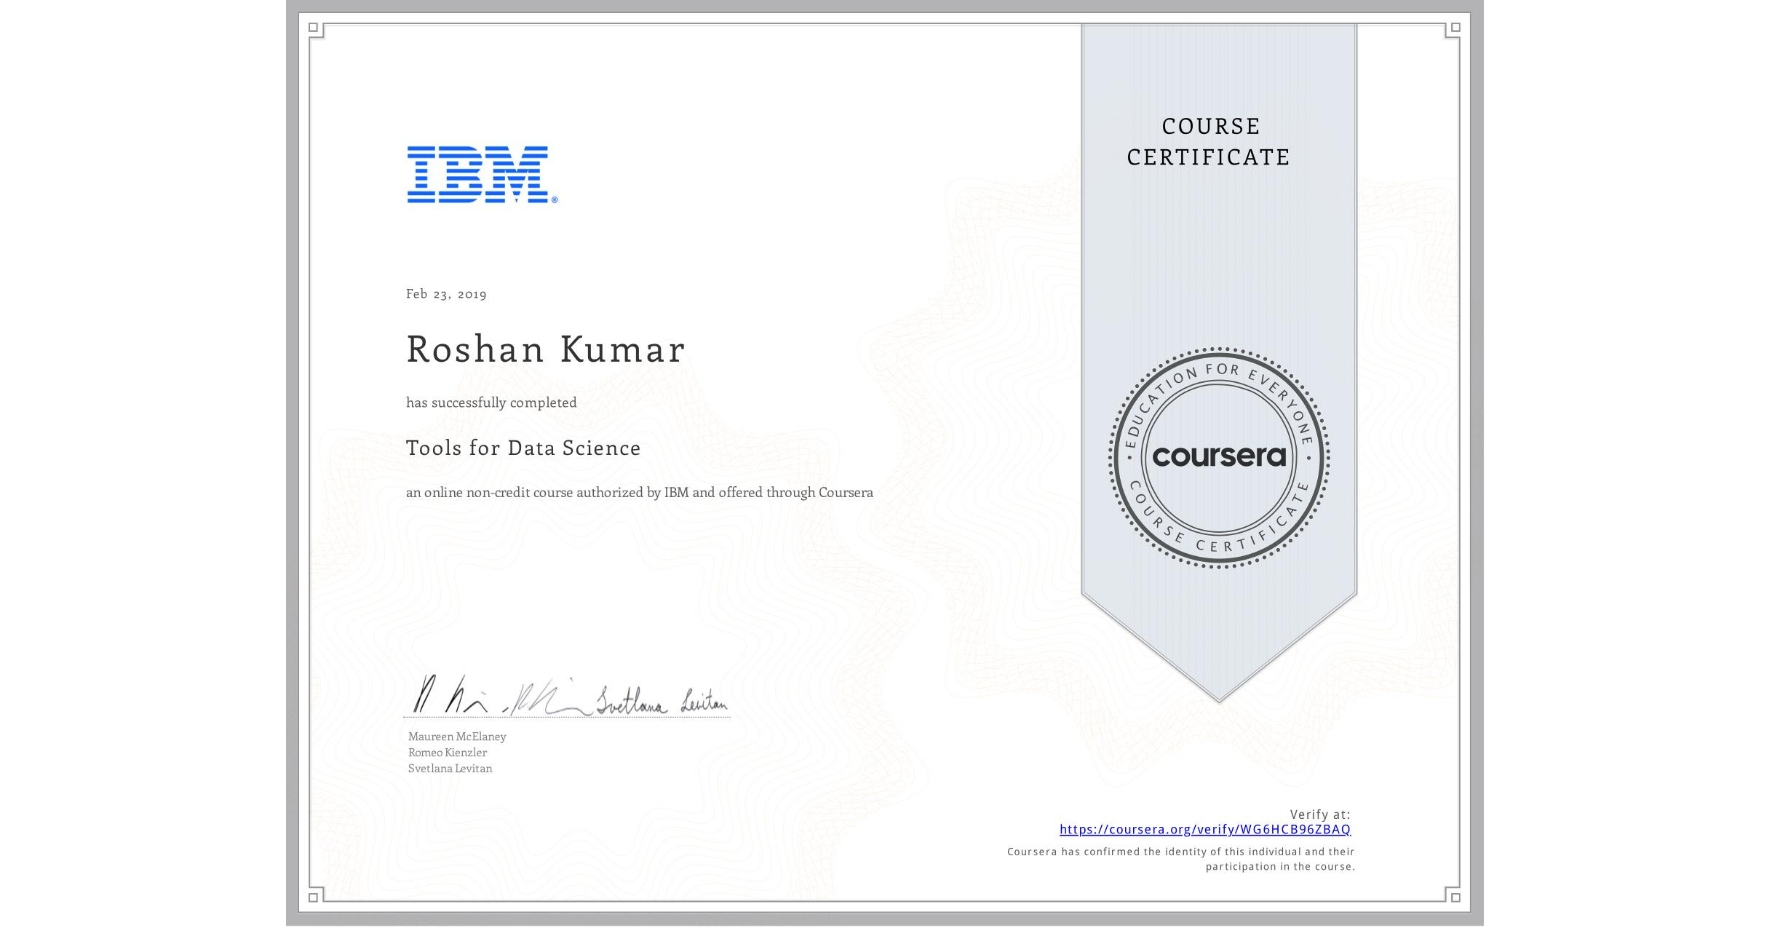 View certificate for Roshan Kumar, Tools for Data Science, an online non-credit course authorized by IBM and offered through Coursera